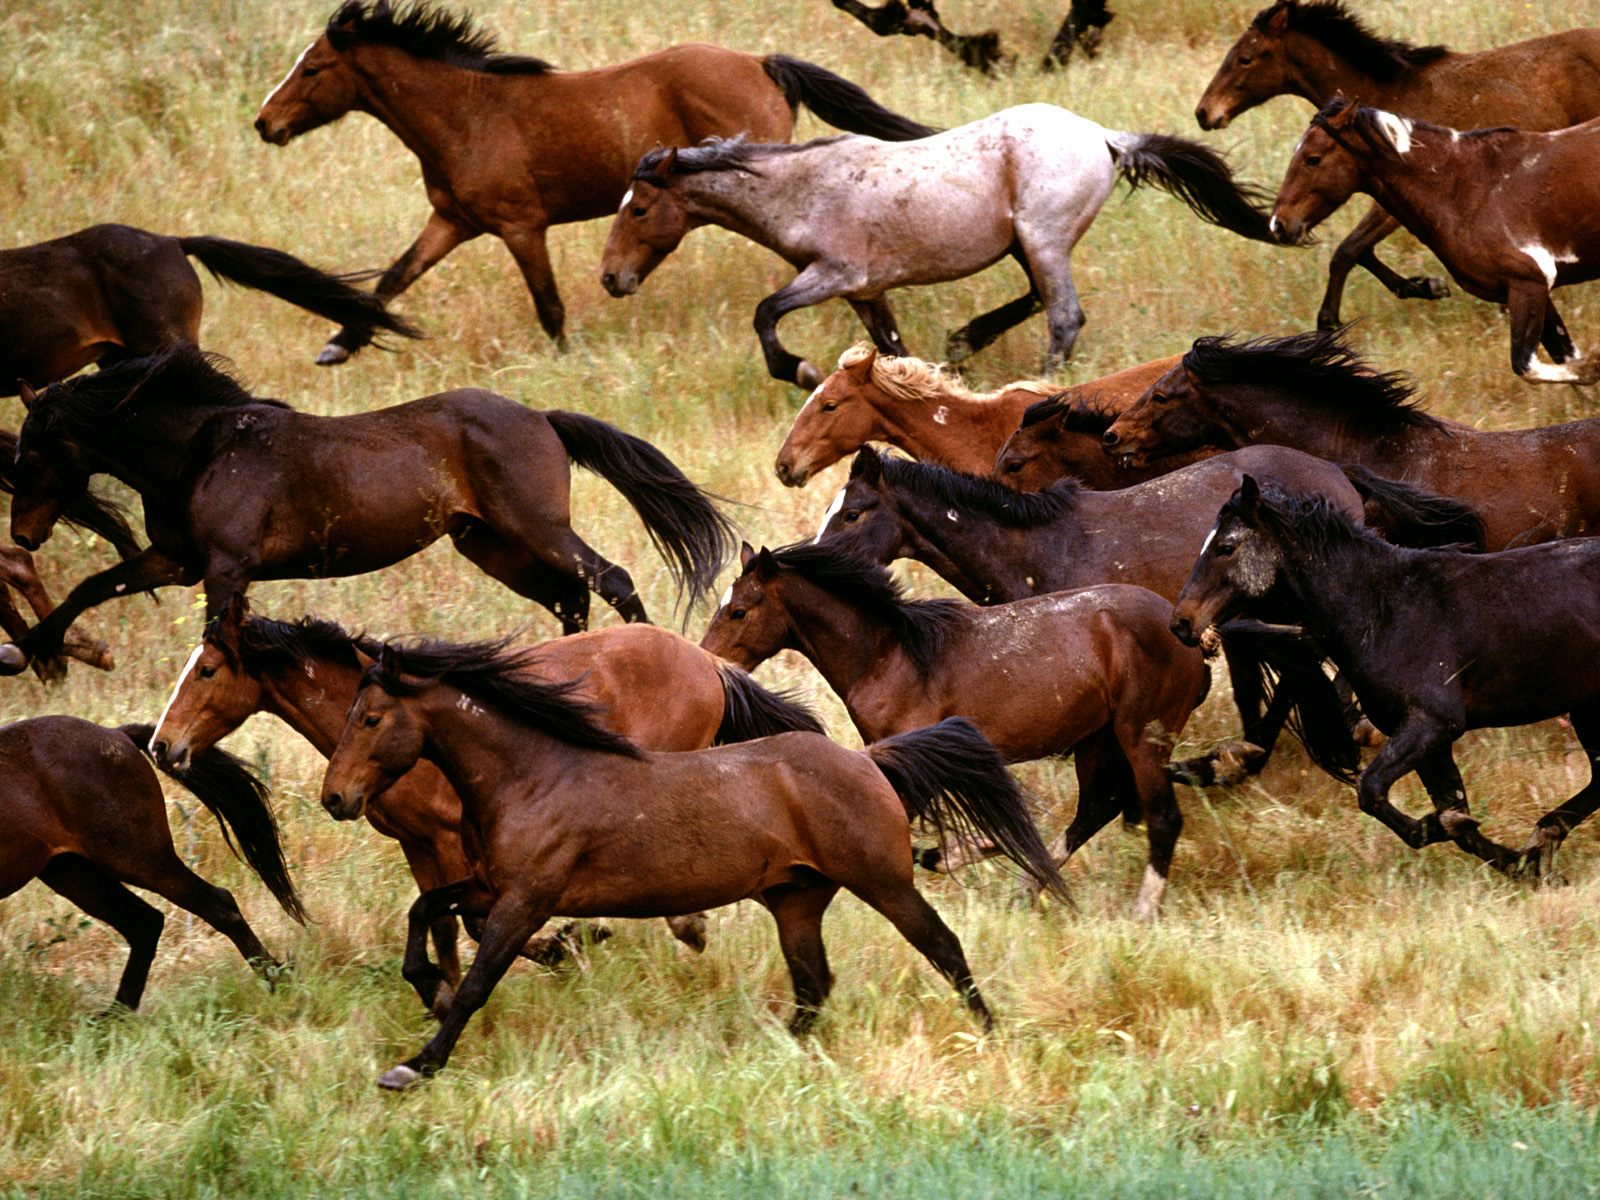 Wild Horses Native Or Invasive Species Urban Equestrian